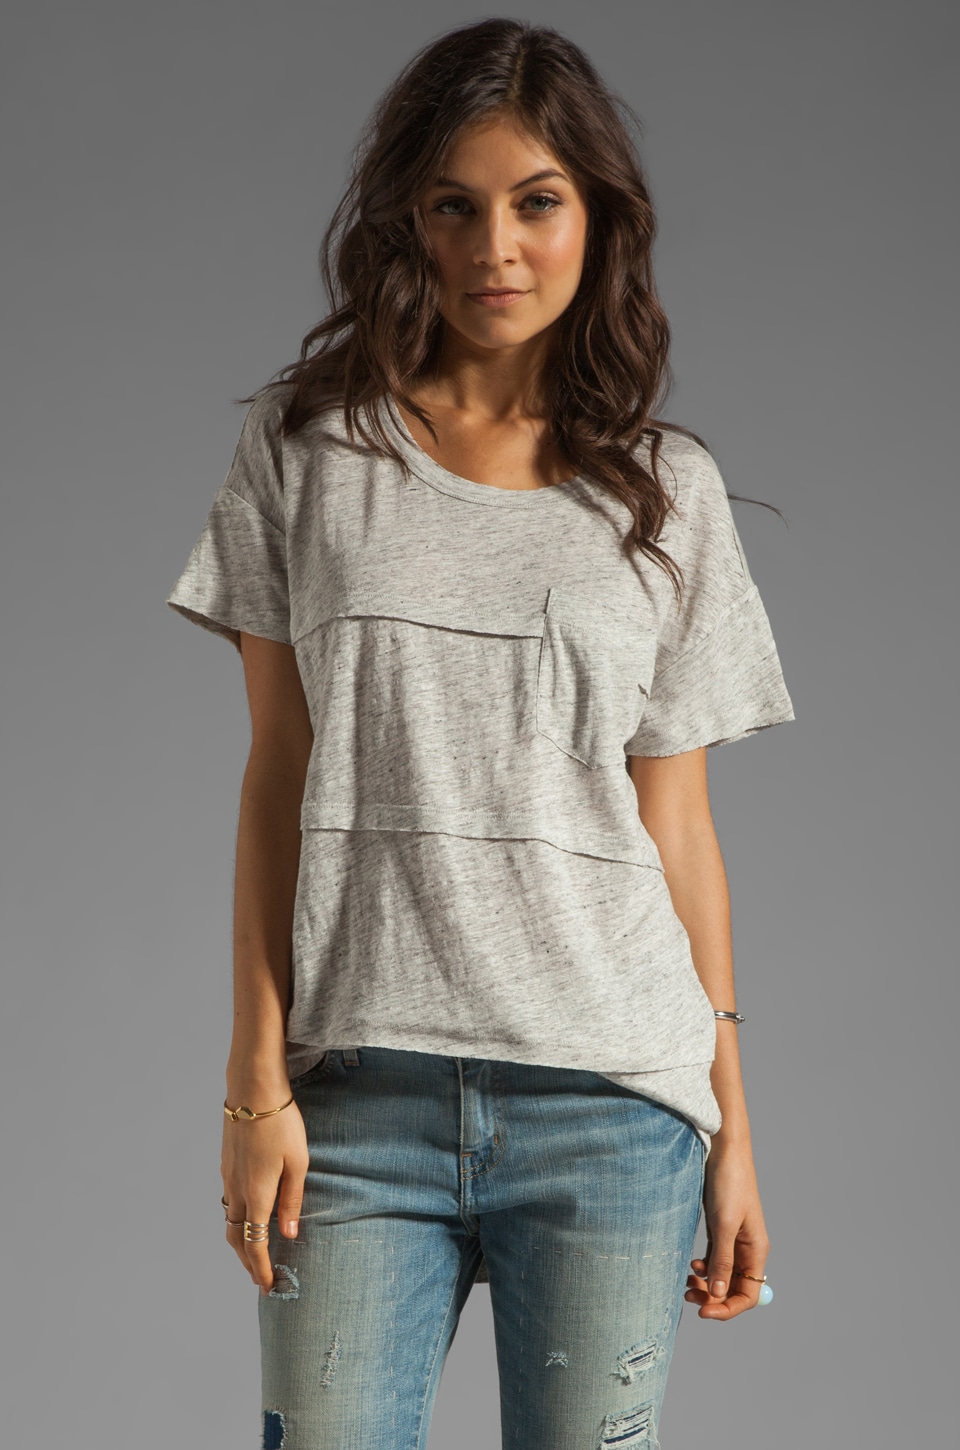 Marc by Marc Jacobs Slubbed Linen Pocket Tee in Stingray Grey Melange